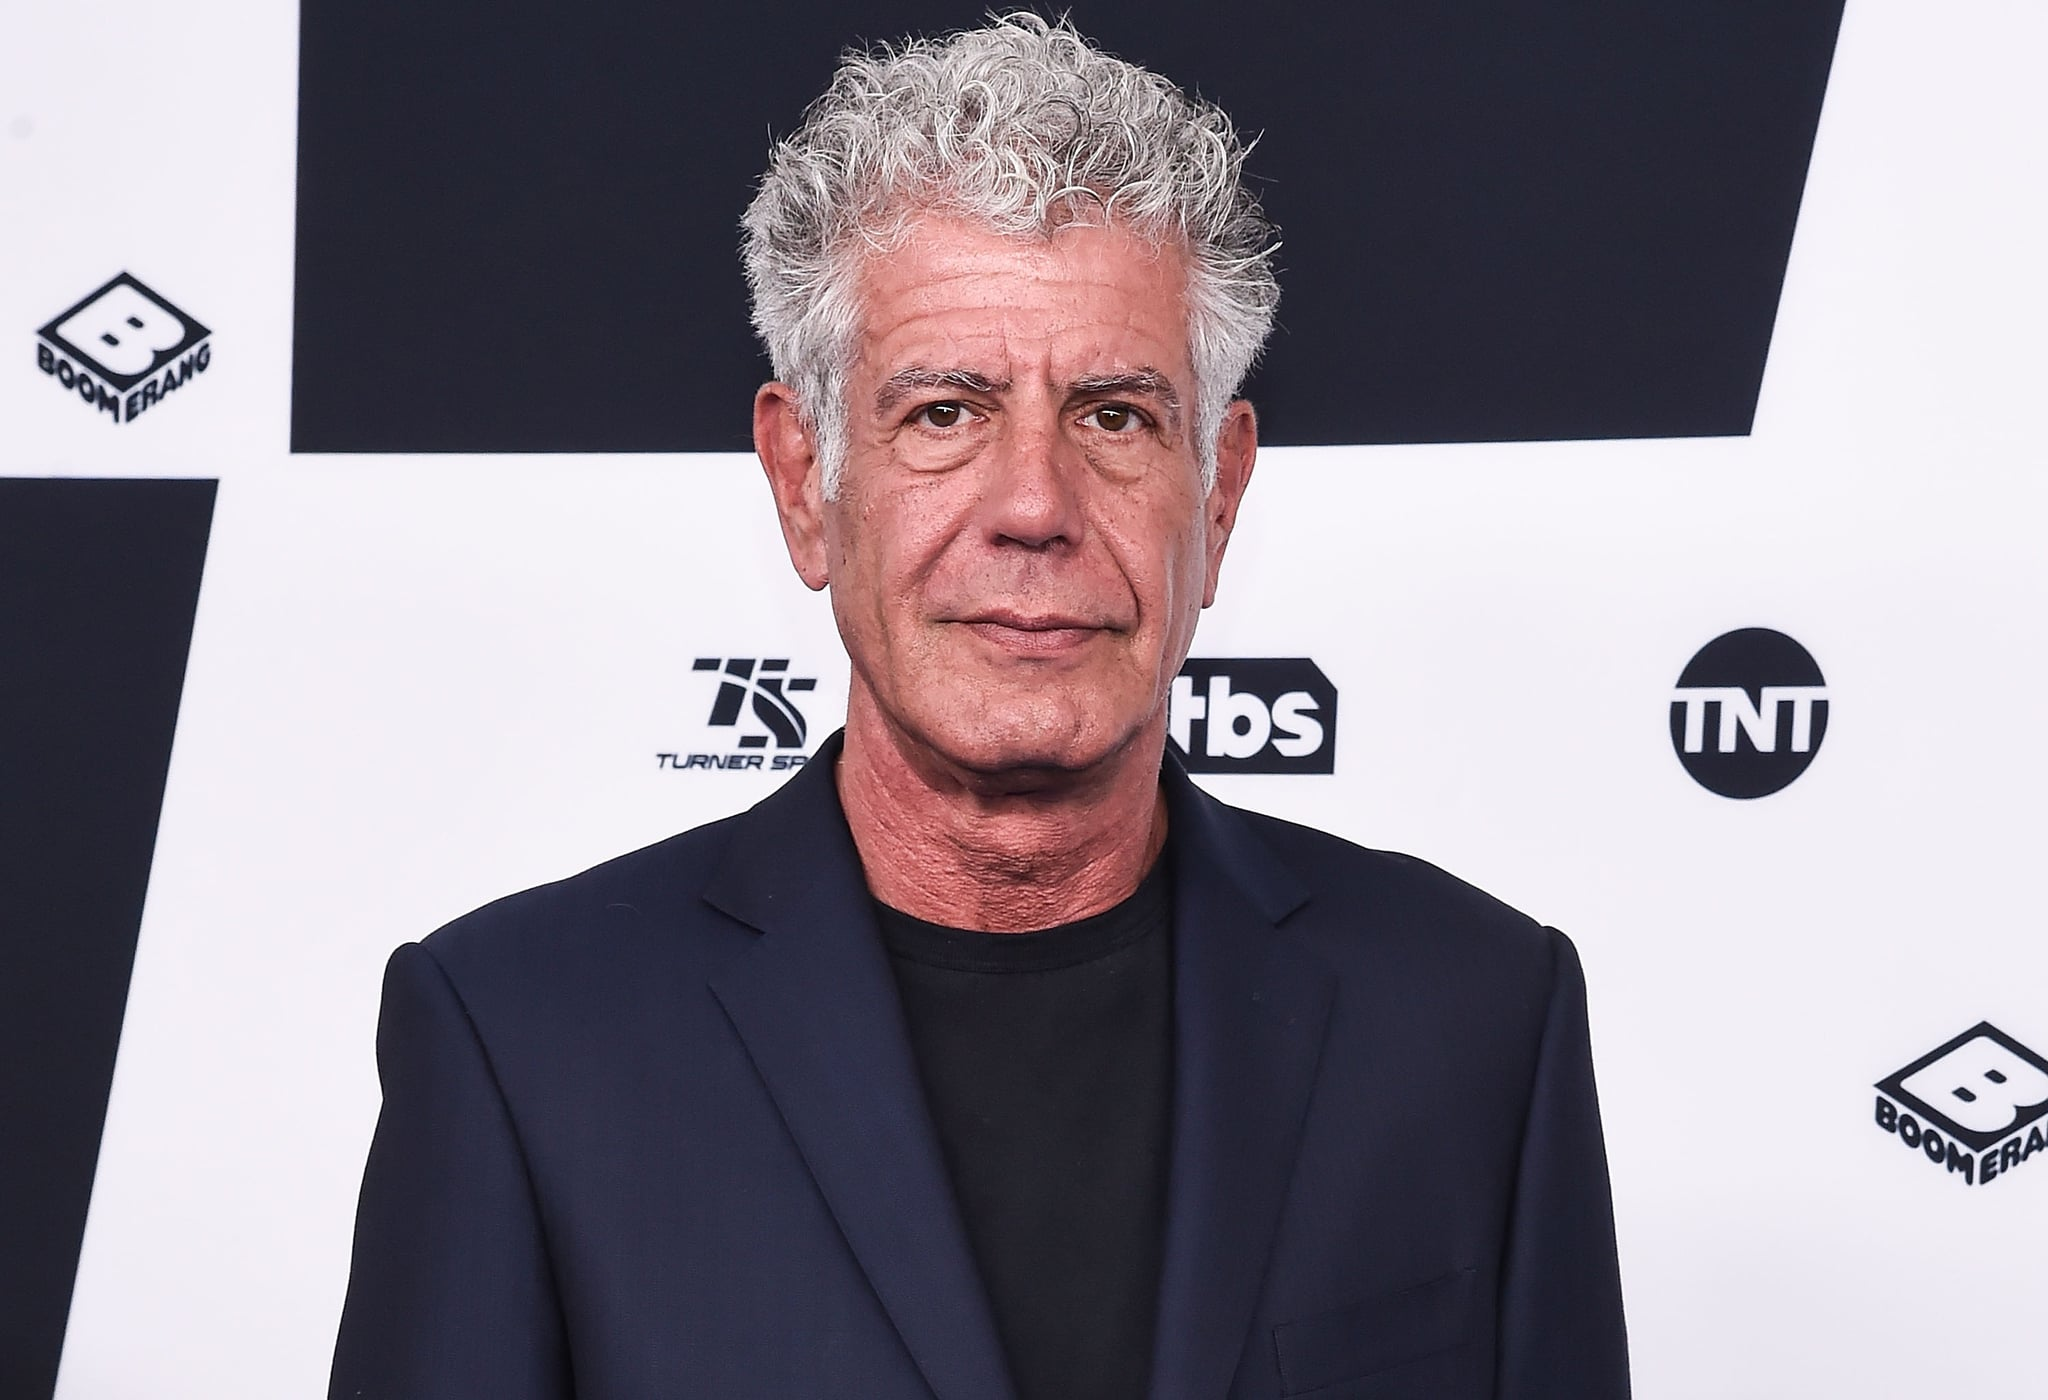 NEW YORK, NY - MAY 17:  Anthony Bourdain attends the 2017 Turner Upfront at Madison Square Garden on May 17, 2017 in New York City.  (Photo by Daniel Zuchnik/WireImage)